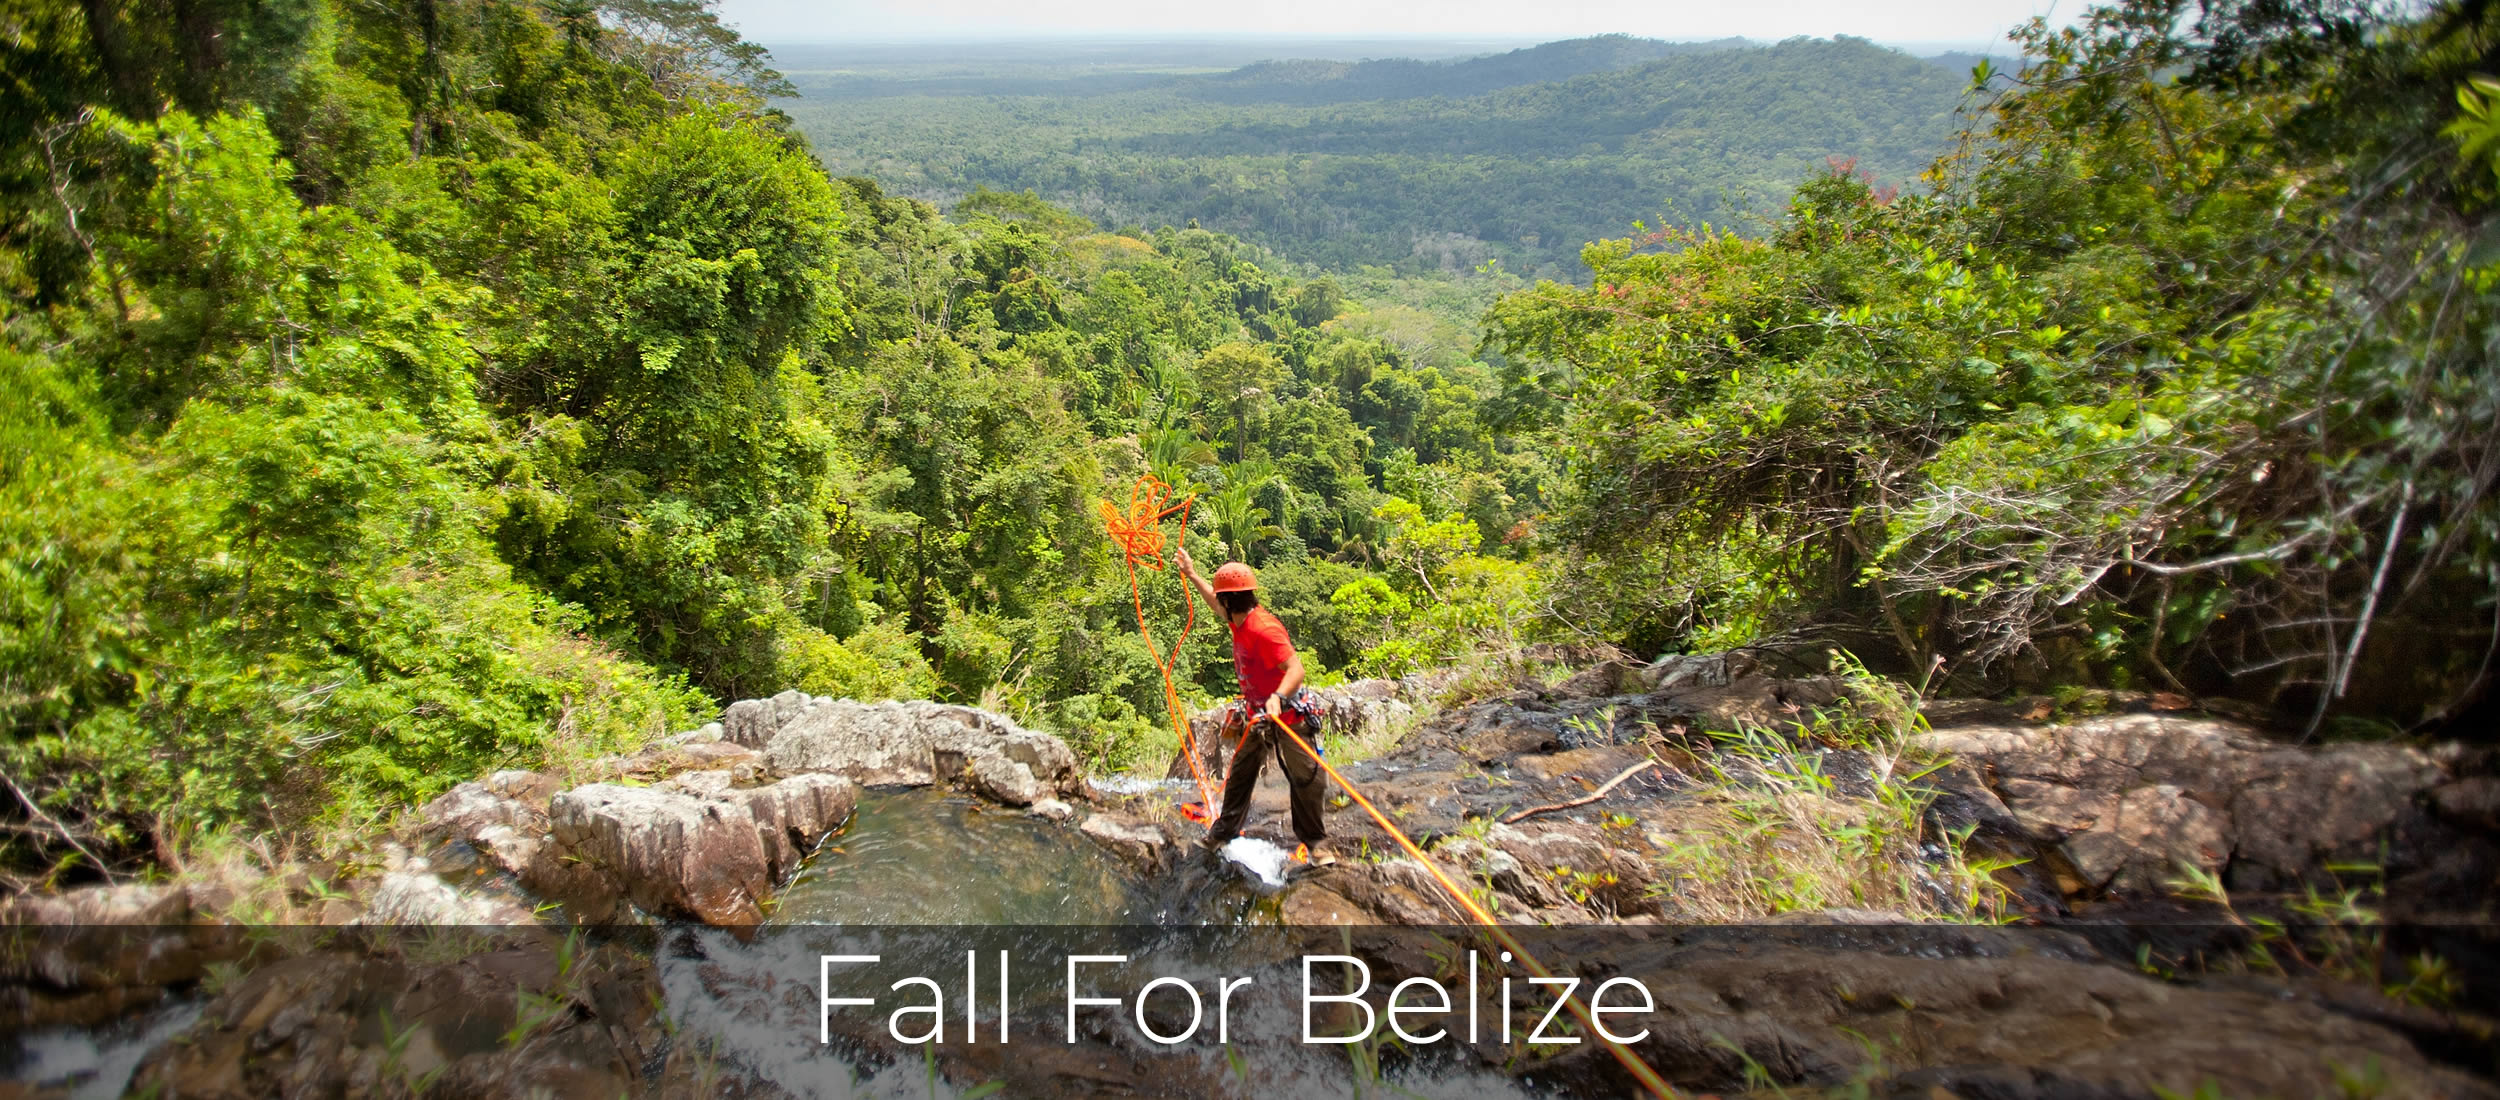 Fall For Belize